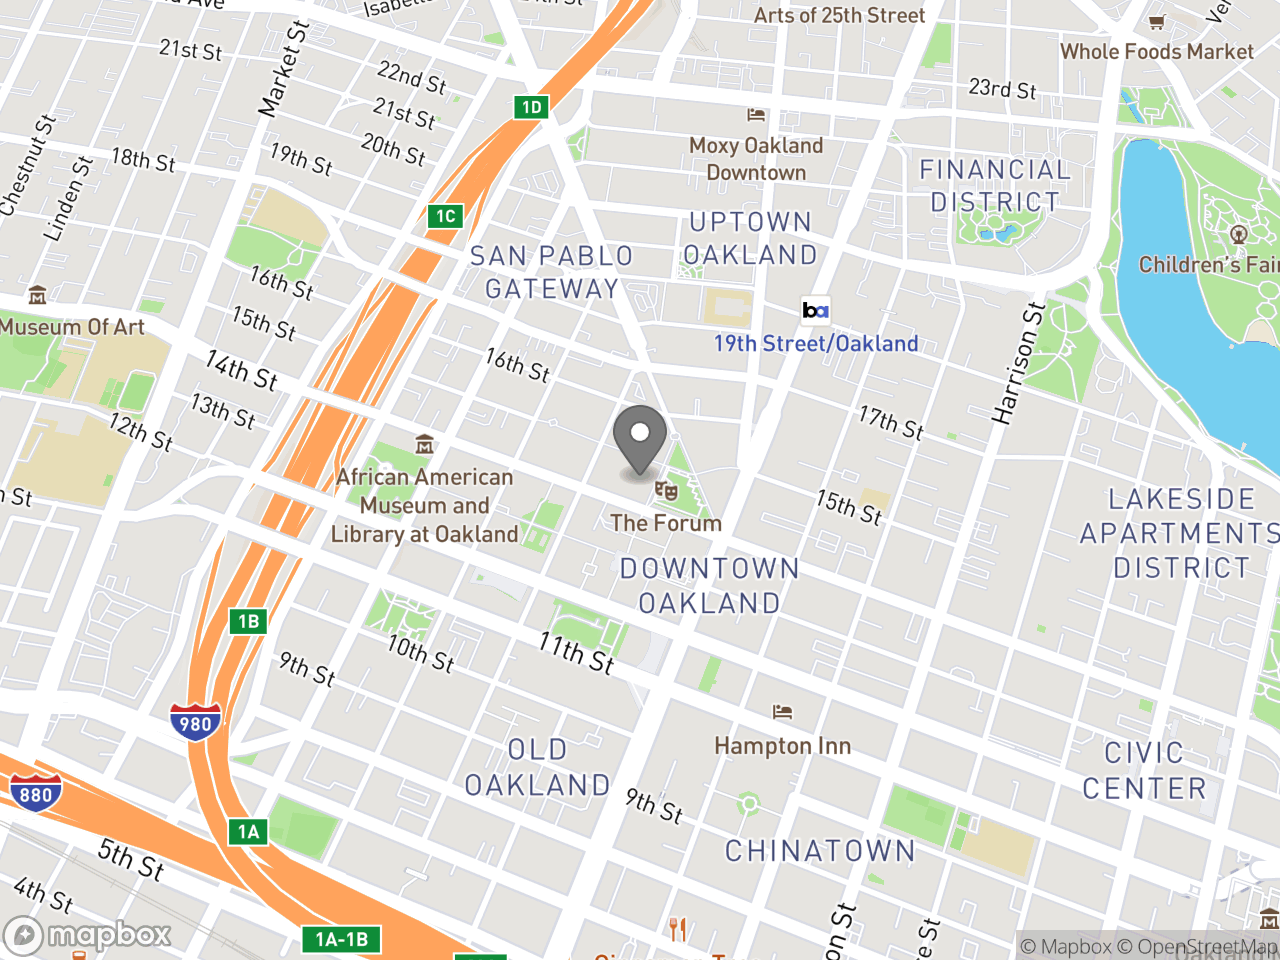 Map location for Police Commission January 24, 2019, located at 1 Frank H. Ogawa Plaza in Oakland, CA  94612